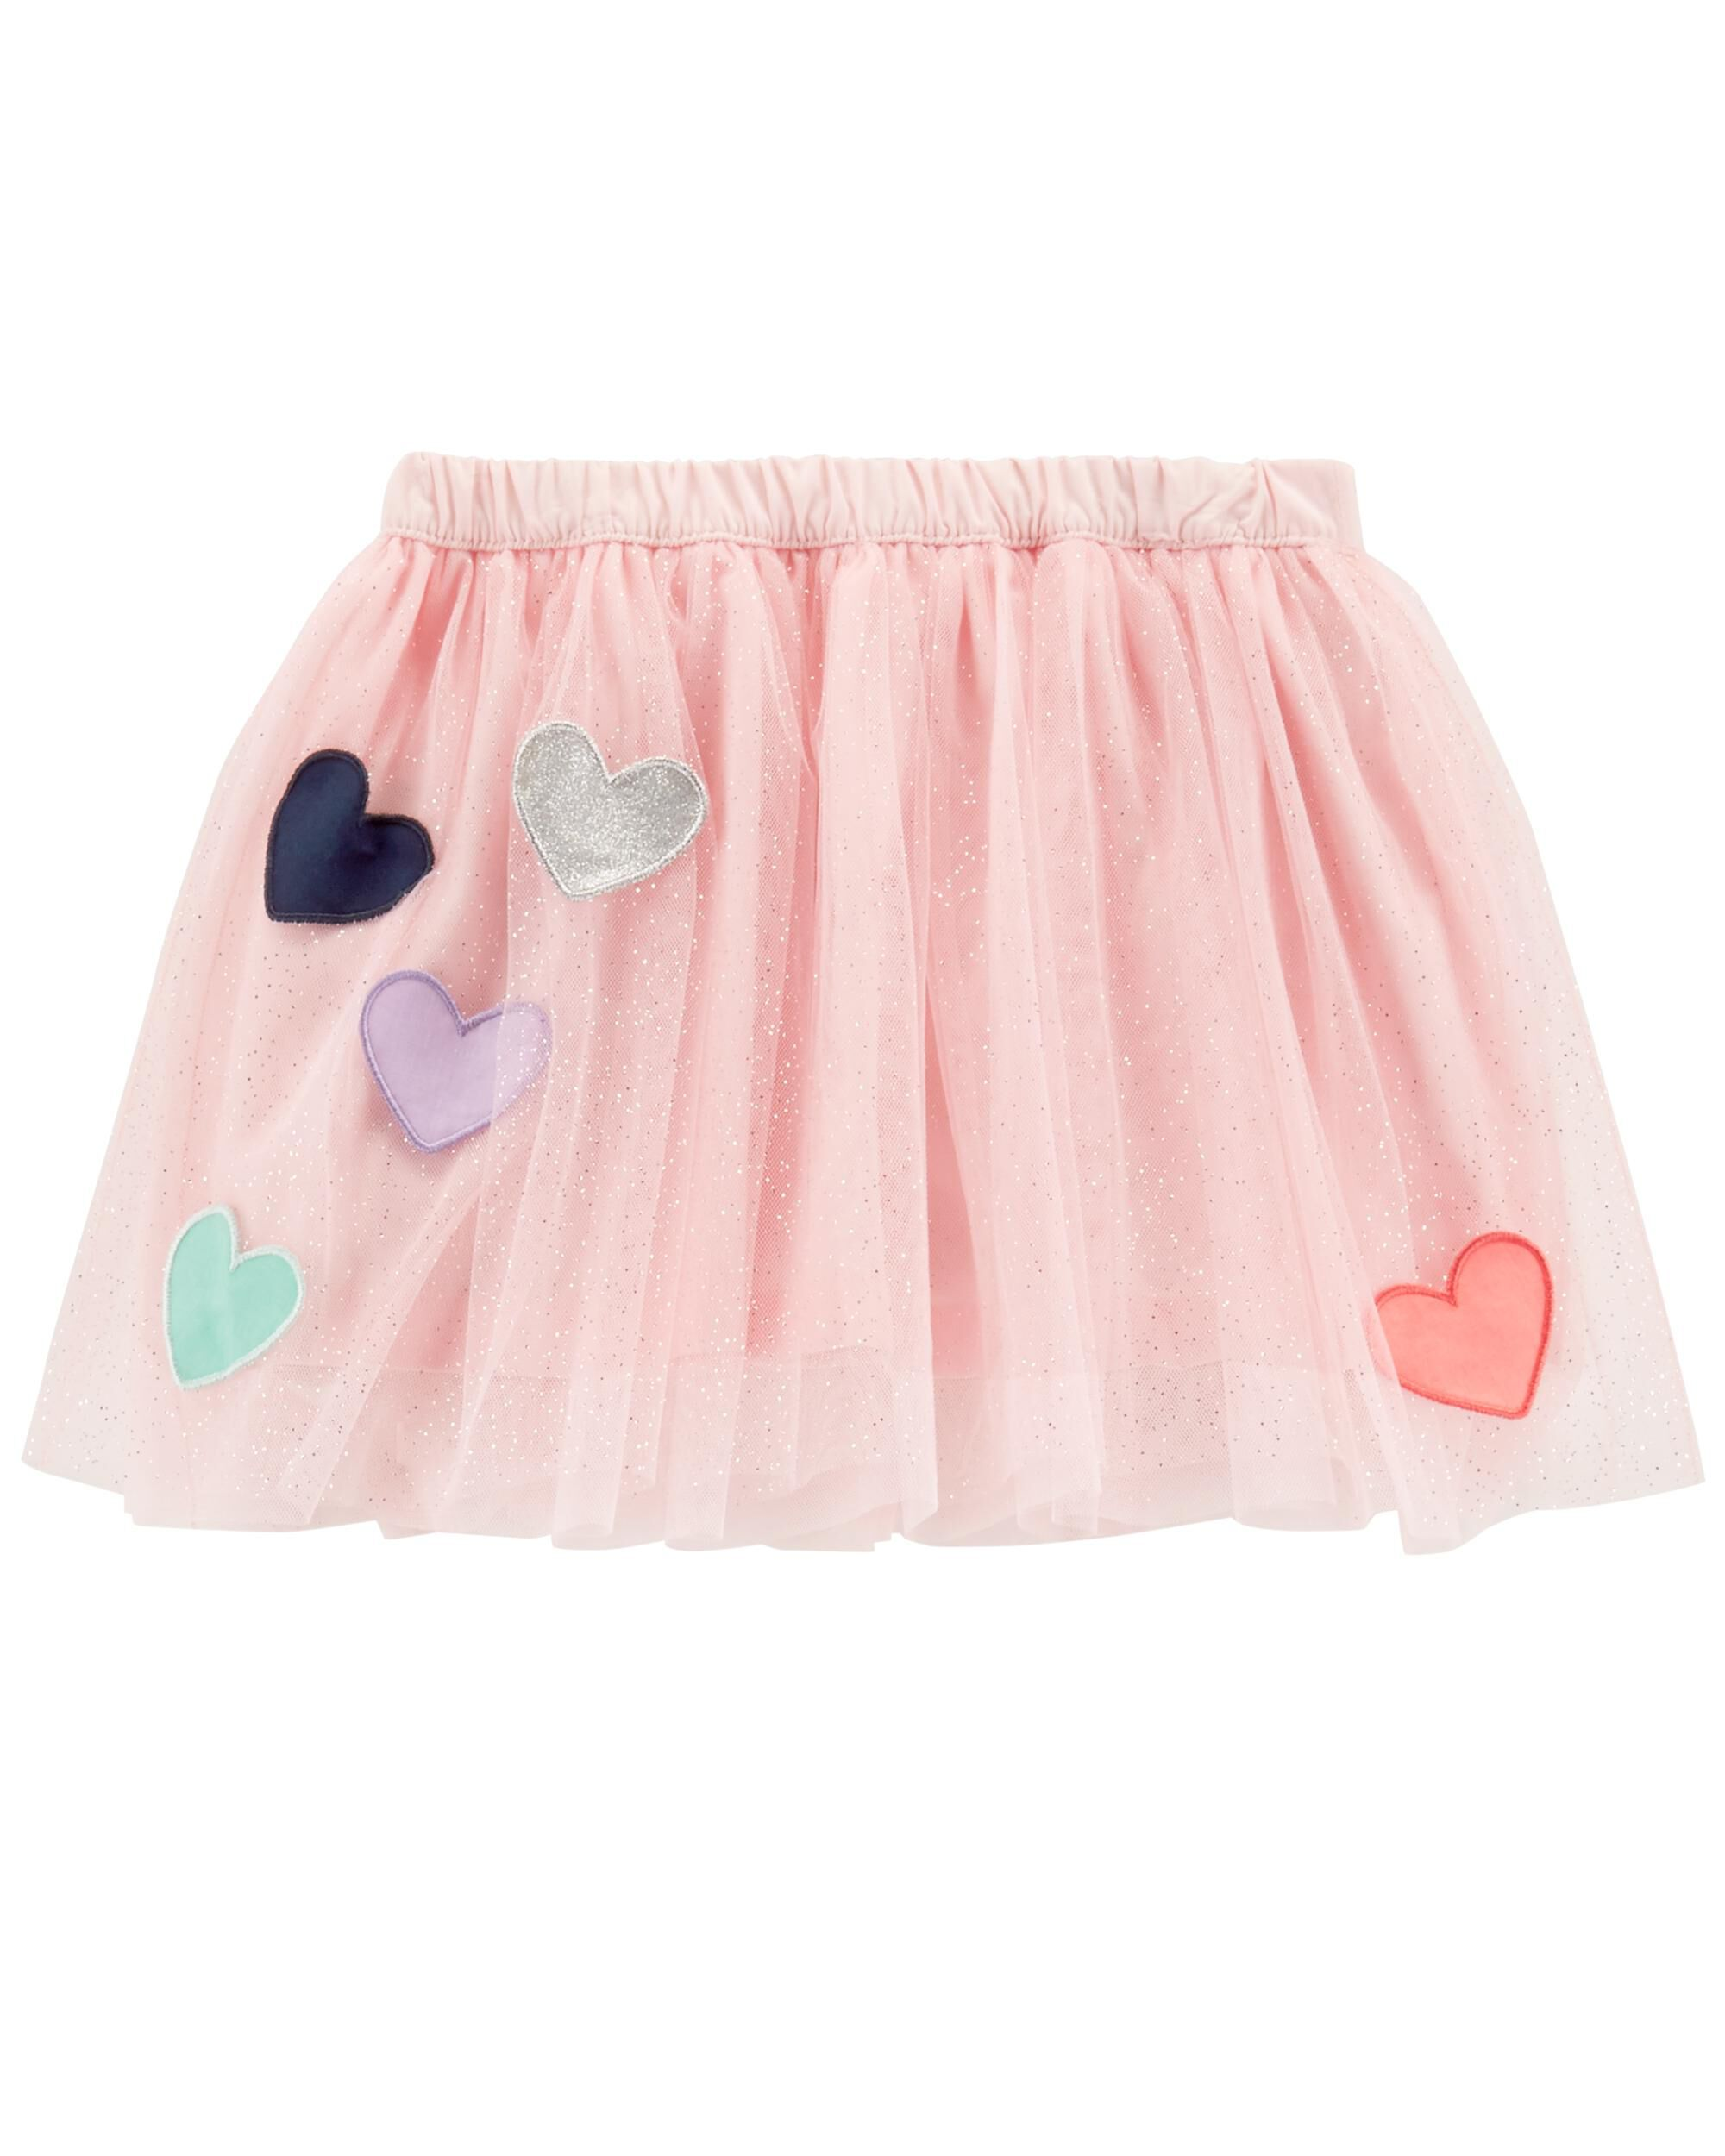 Carters Girls 2T-8 Tulle Skirt with Applique